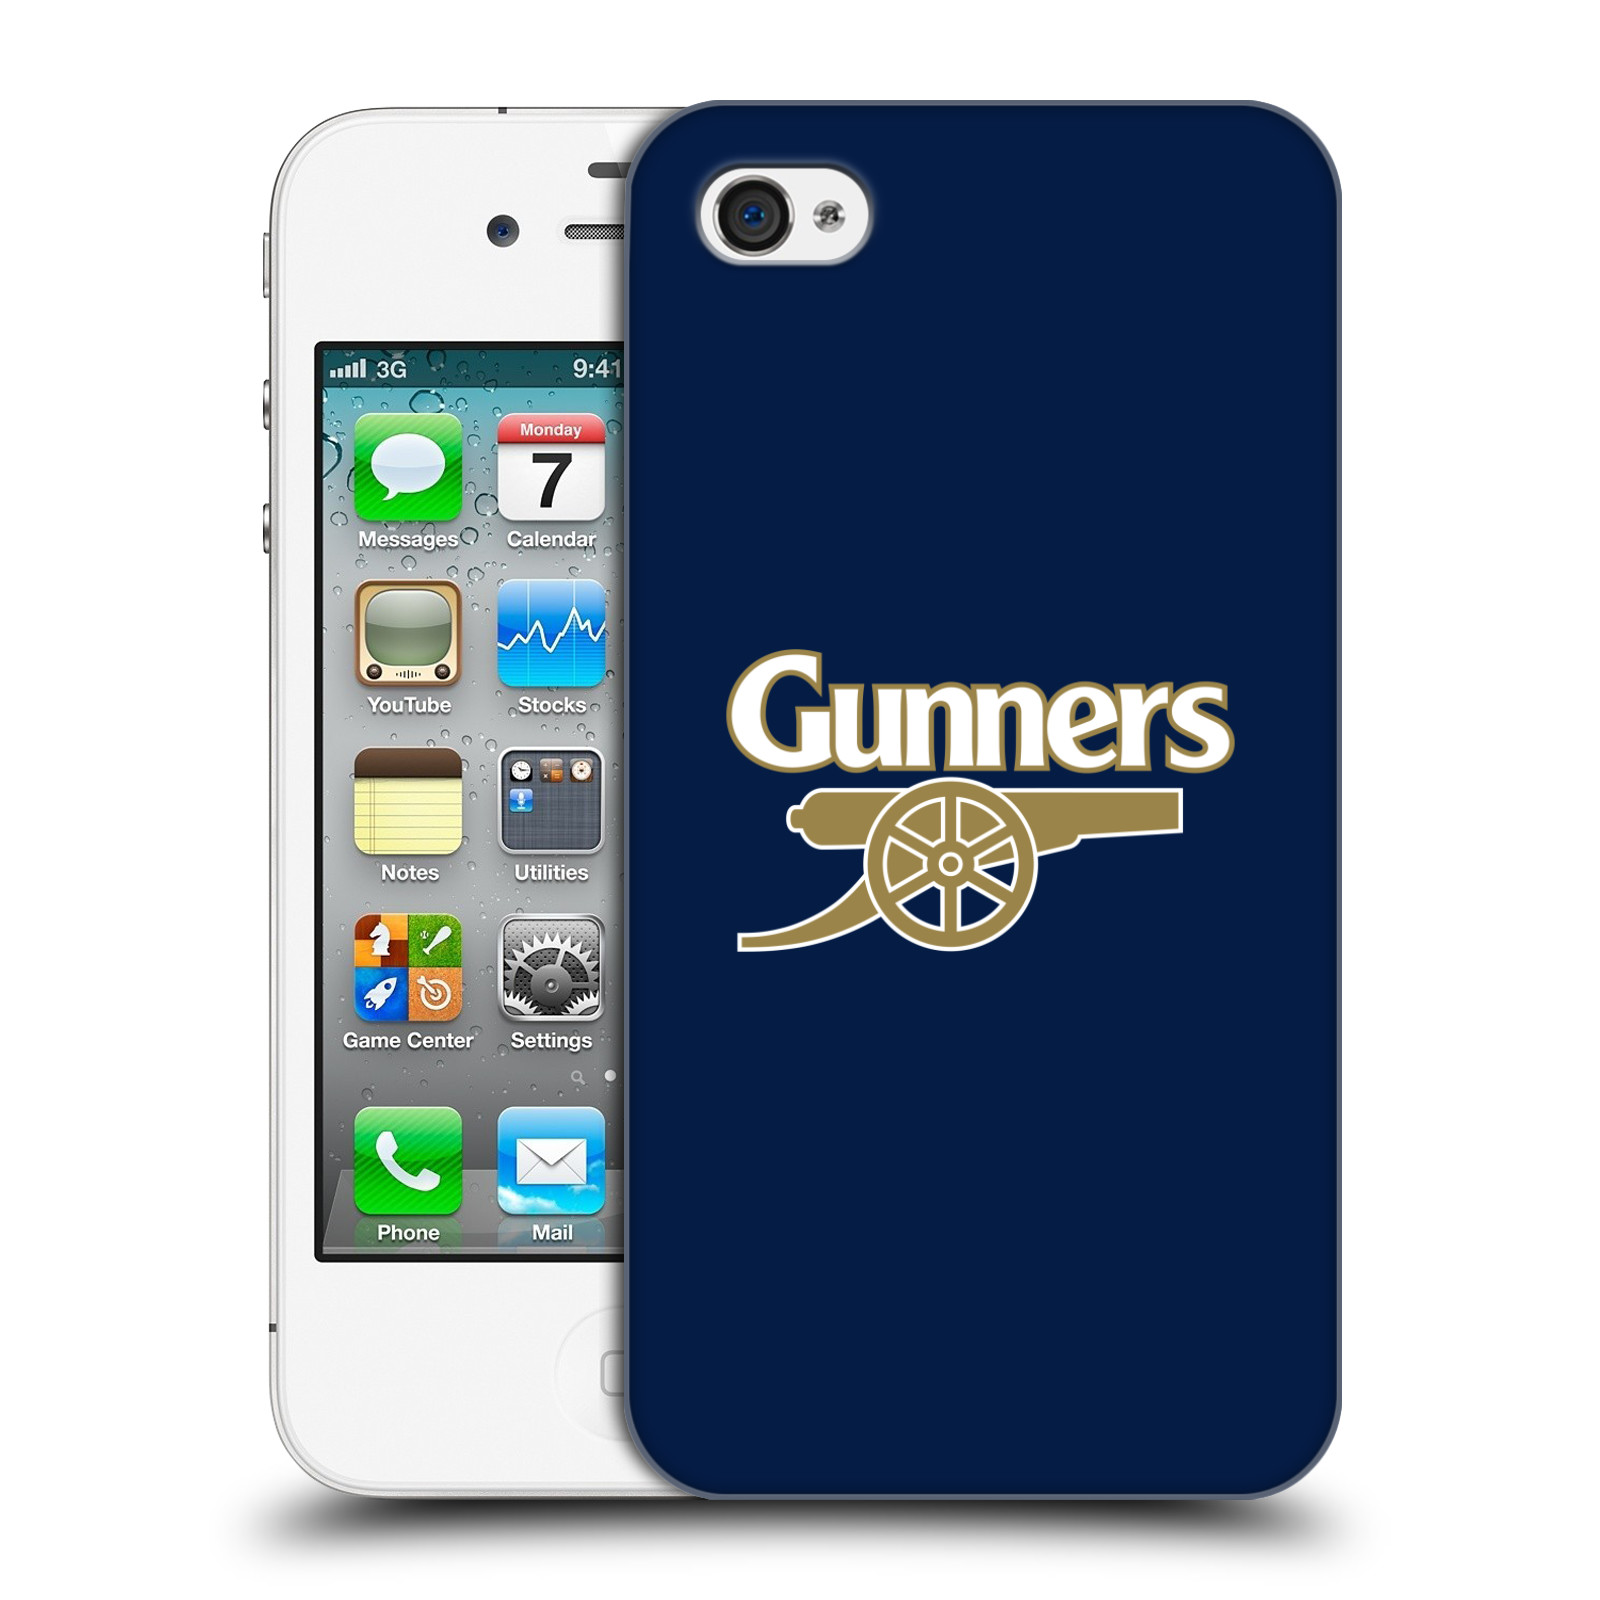 Plastové pouzdro na mobil Apple iPhone 4 a 4S - Head Case - Arsenal FC - Gunners